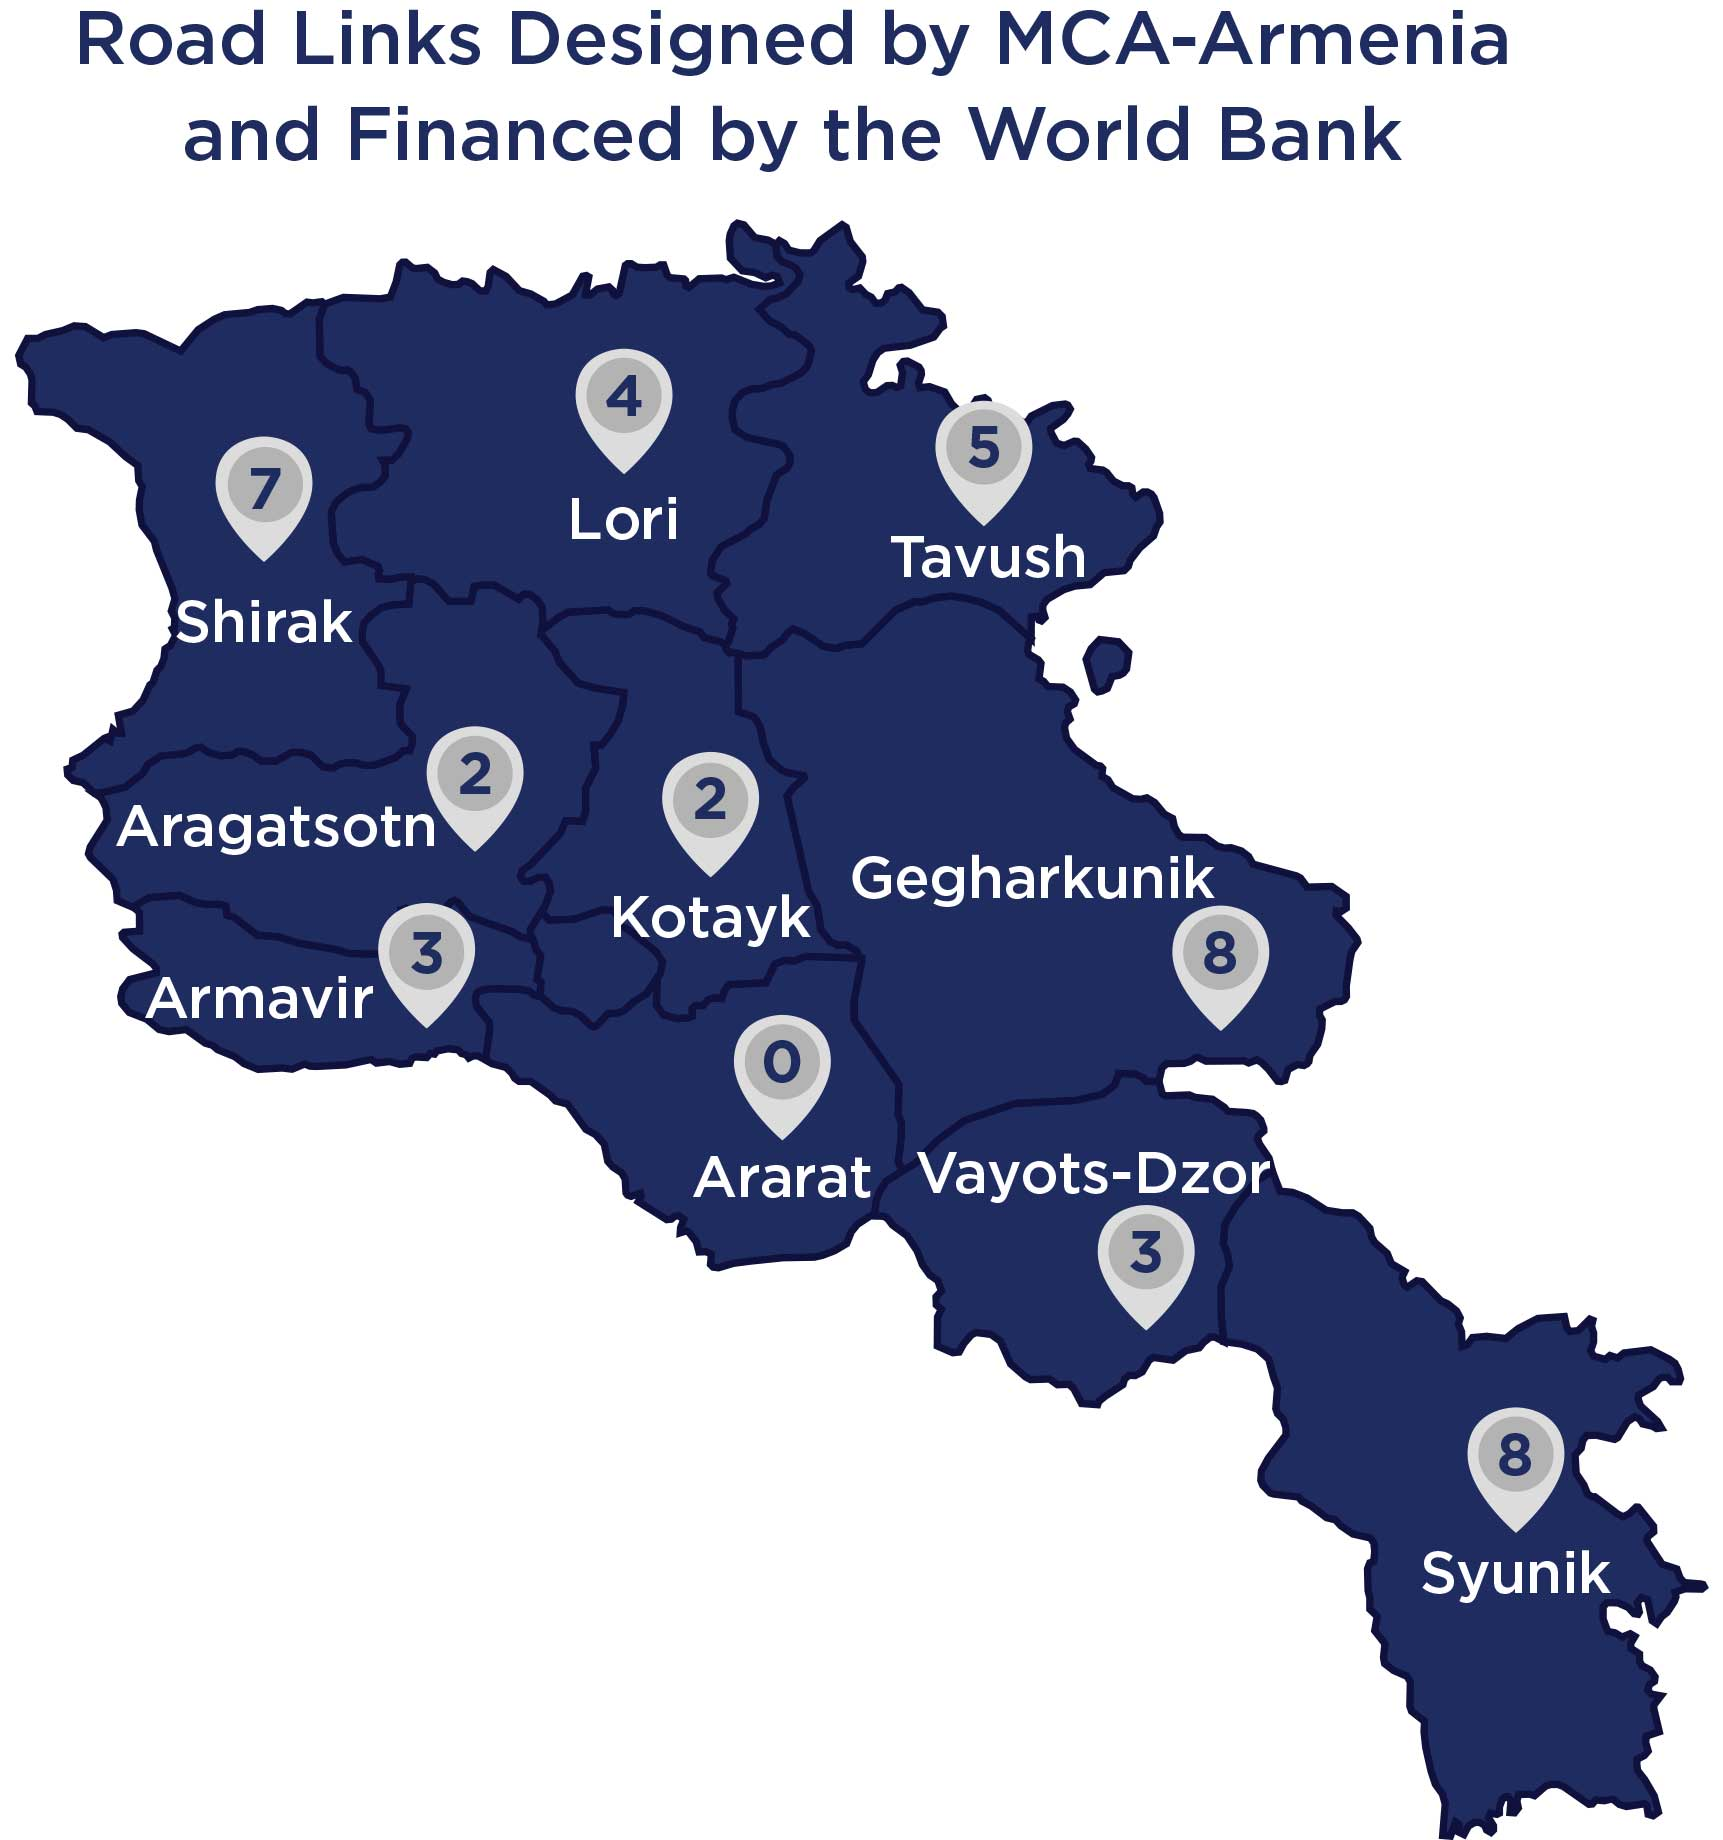 Map of road links designed by MCA-Armeniaand financed by the World Bank.